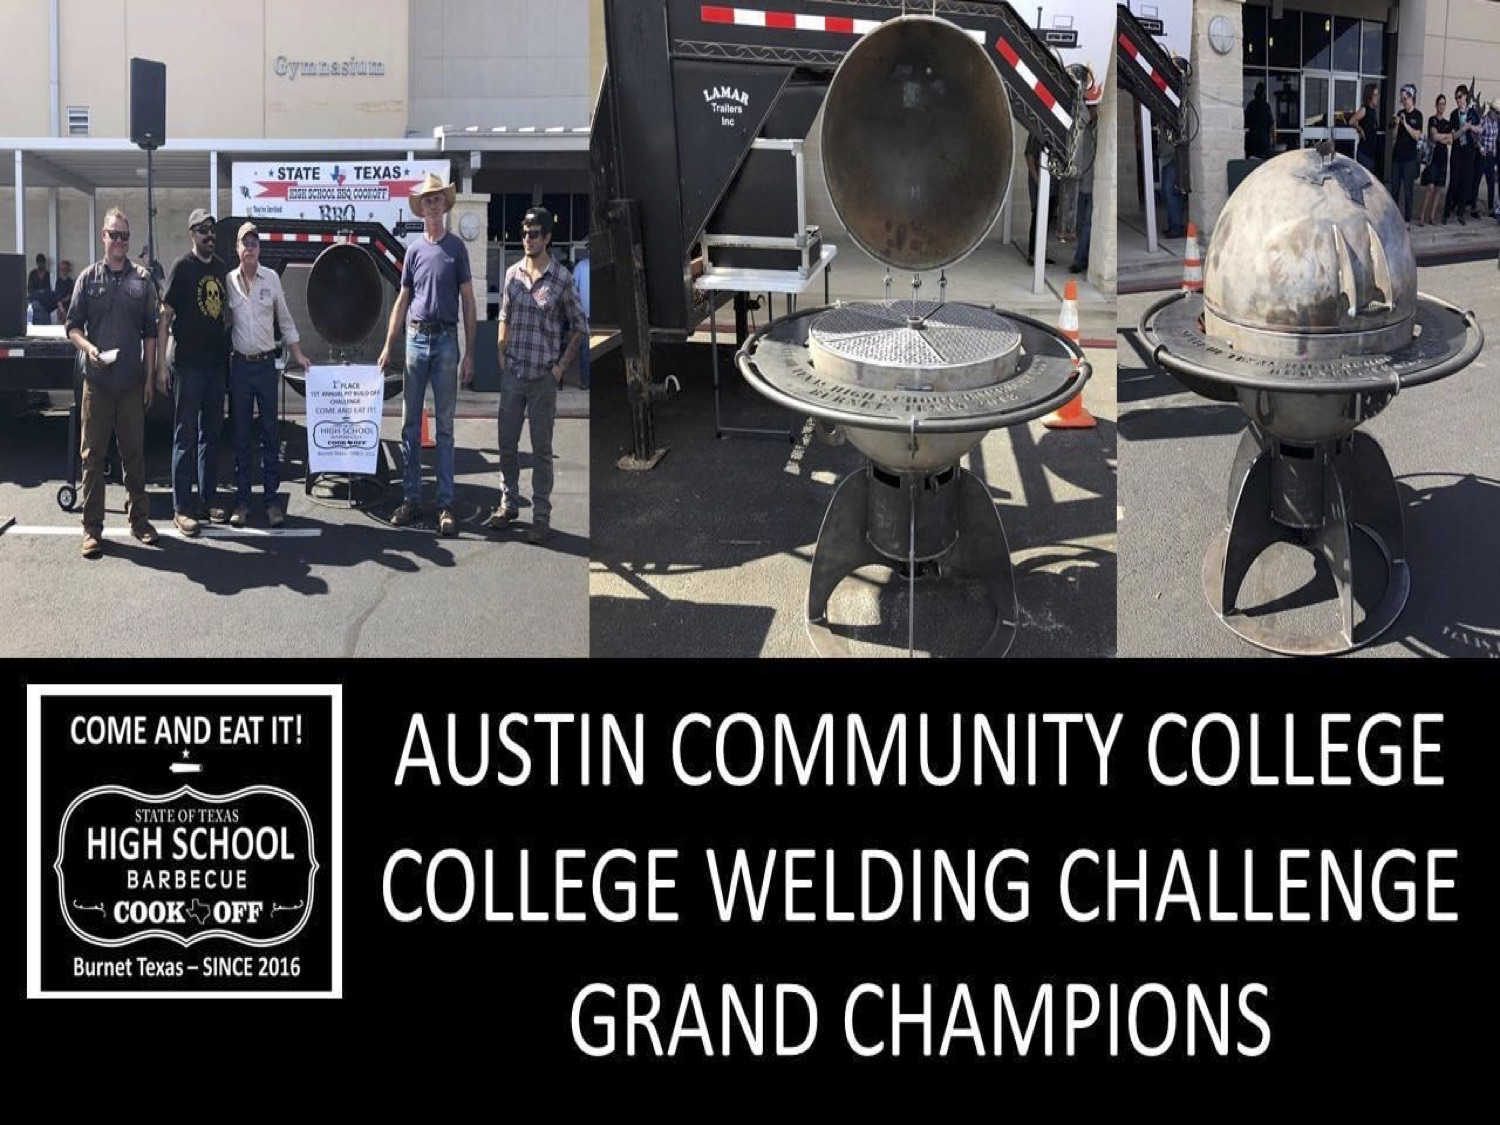 2018 Texas HS college welding champs